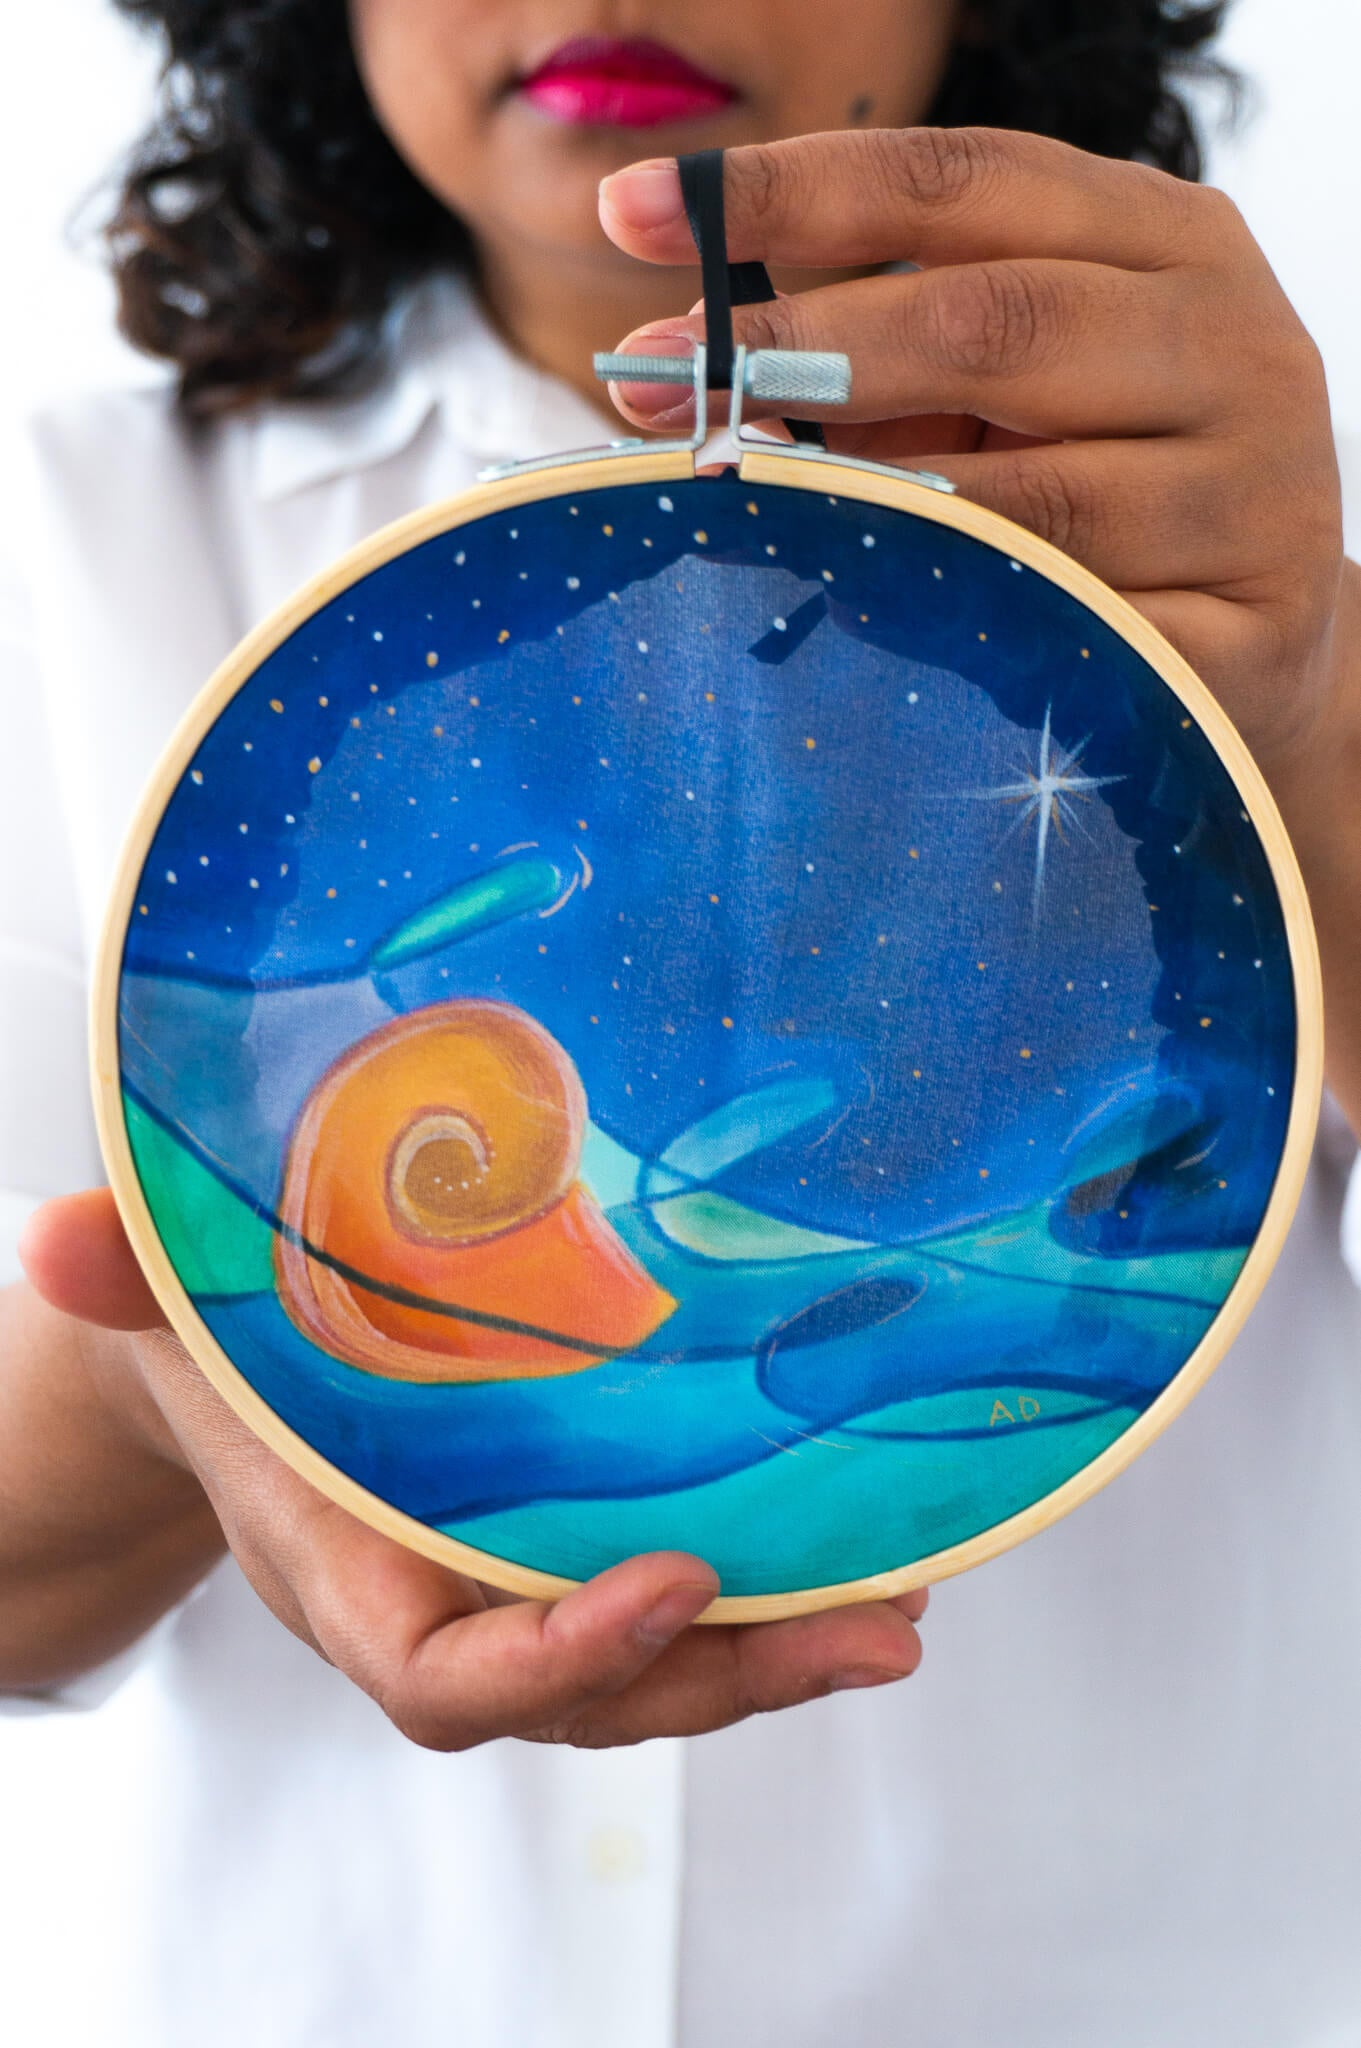 Wall Art: embroidery hoop Nautilus Calm at Night by Arati Devasher London